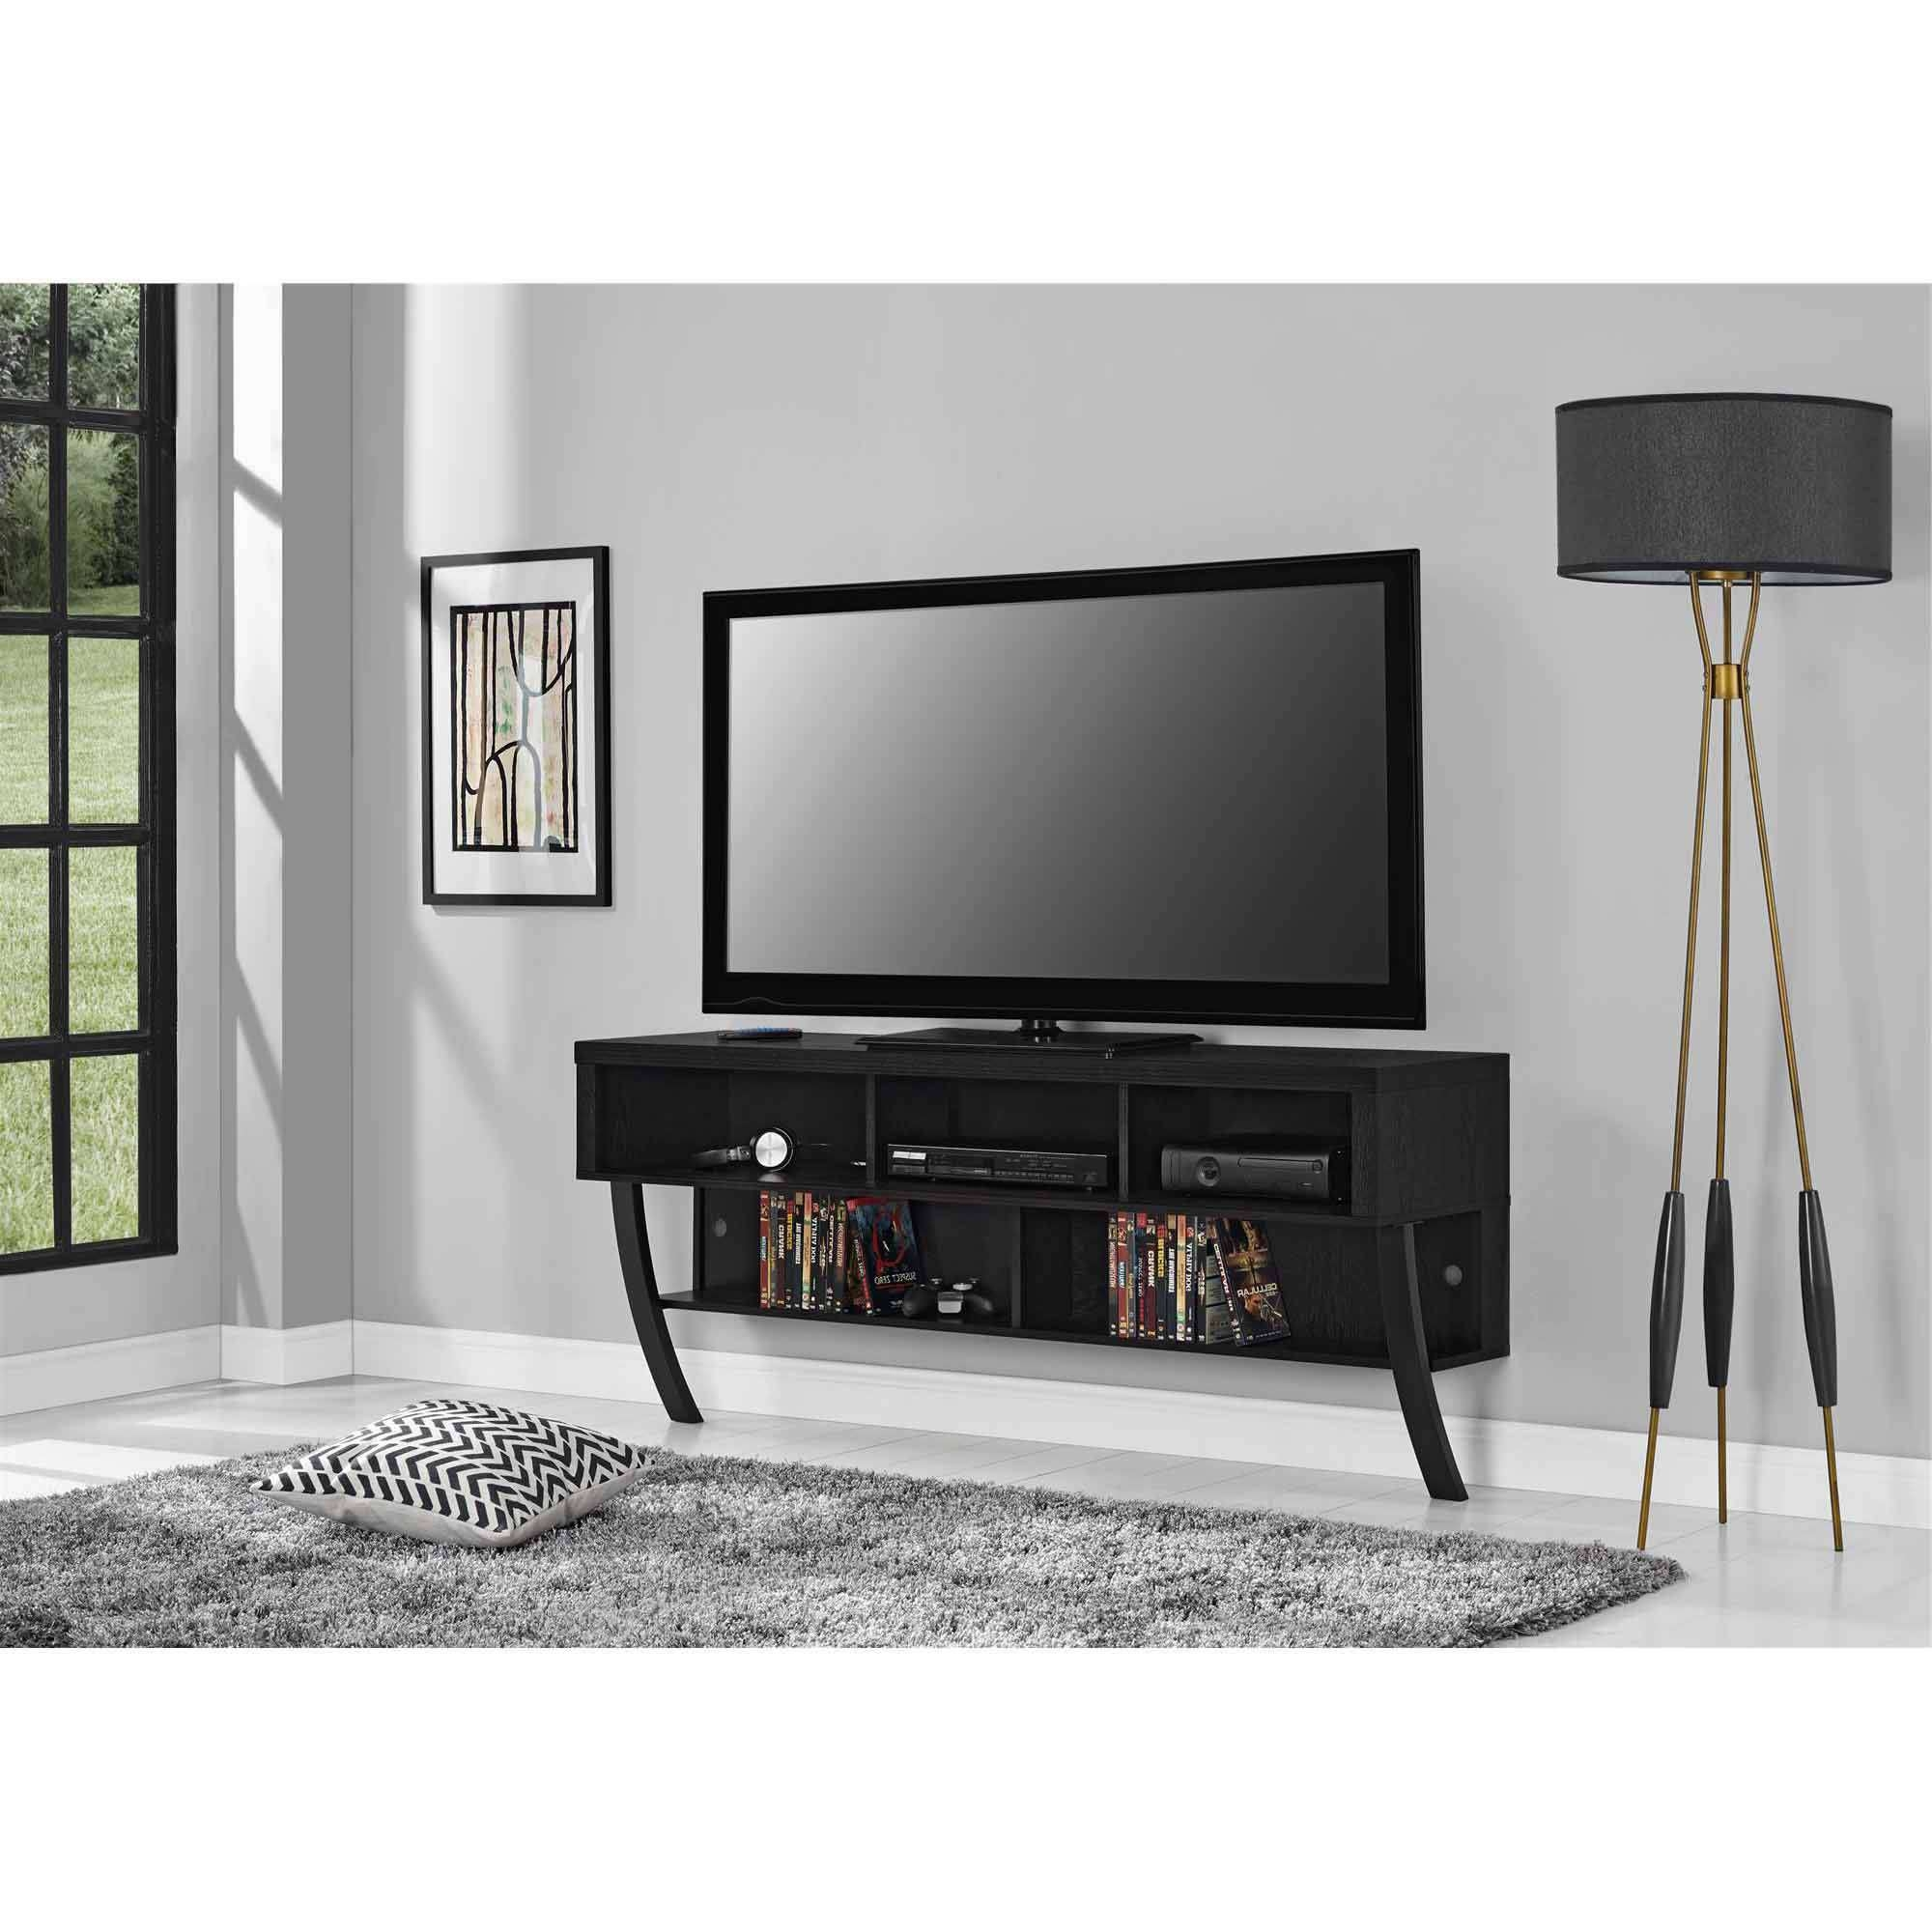 Wall Mount Tv Stands Pertaining To Wall Mounted Tv Stands For Flat Screens (View 7 of 15)